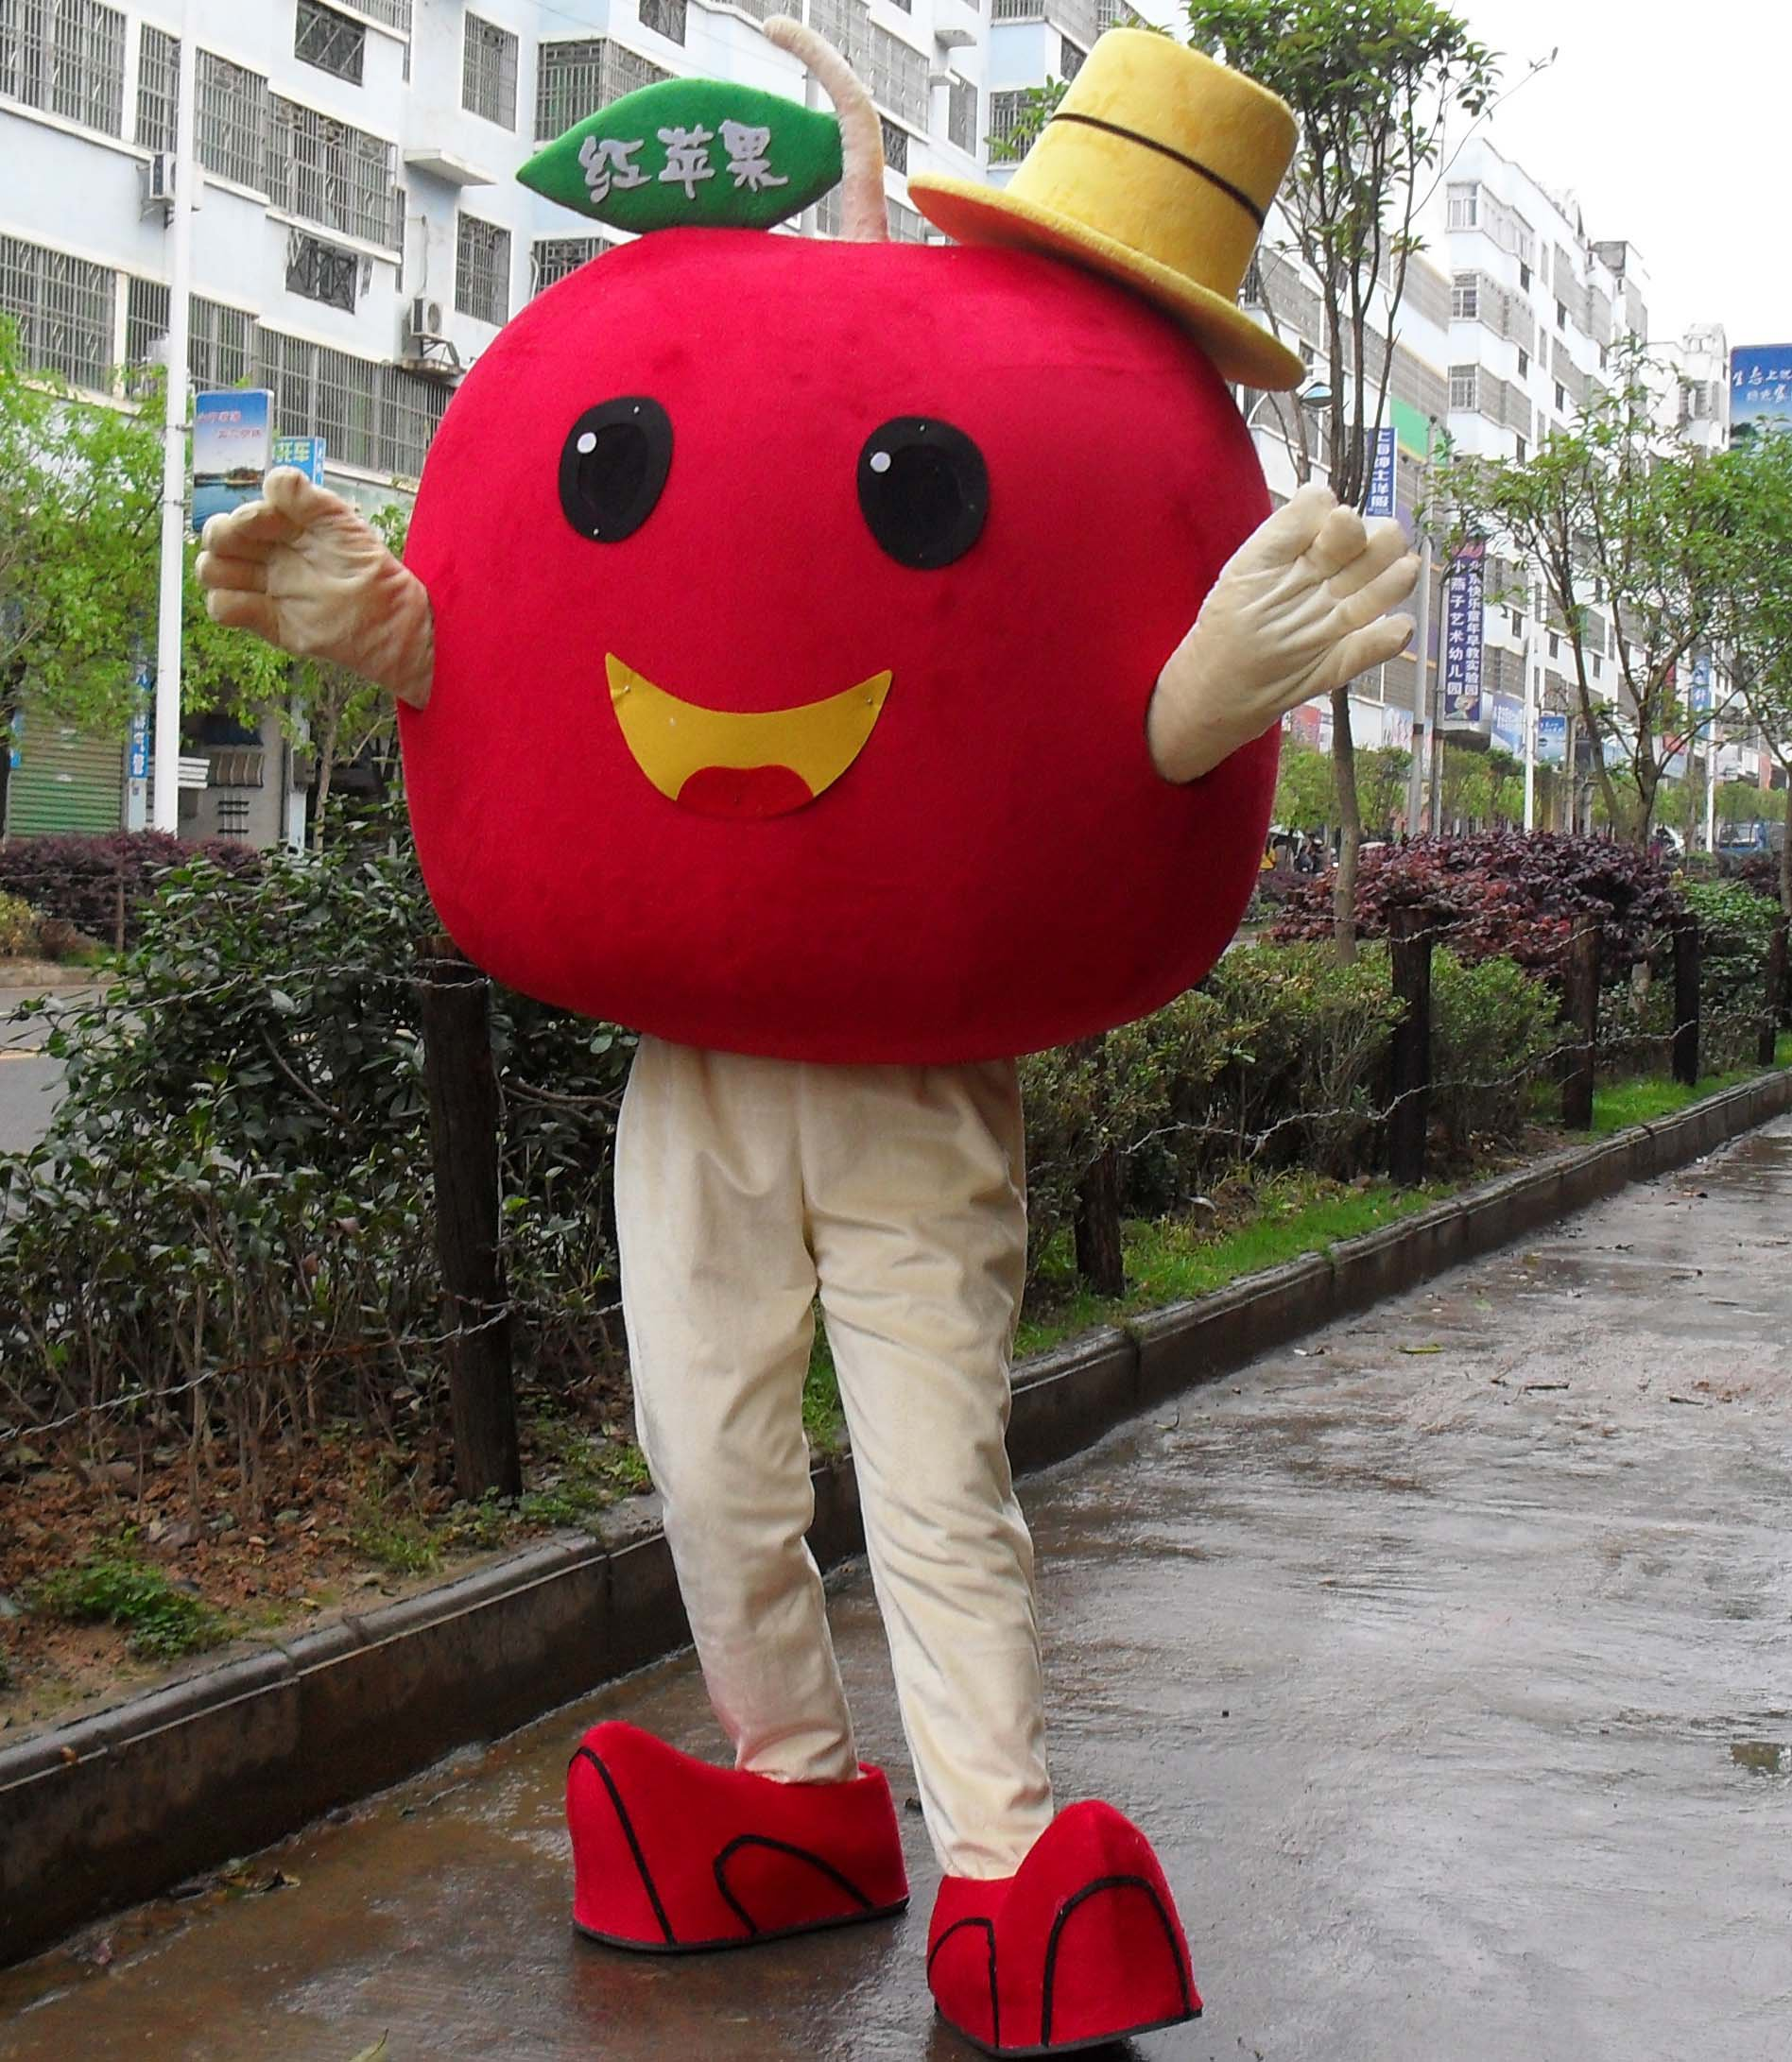 Red Apple Cartoon Doll Clothing Cartoon Walking Doll Clothing Cartoon Show Clothing Cartoon Fruit Doll Clothes Mascot Costume